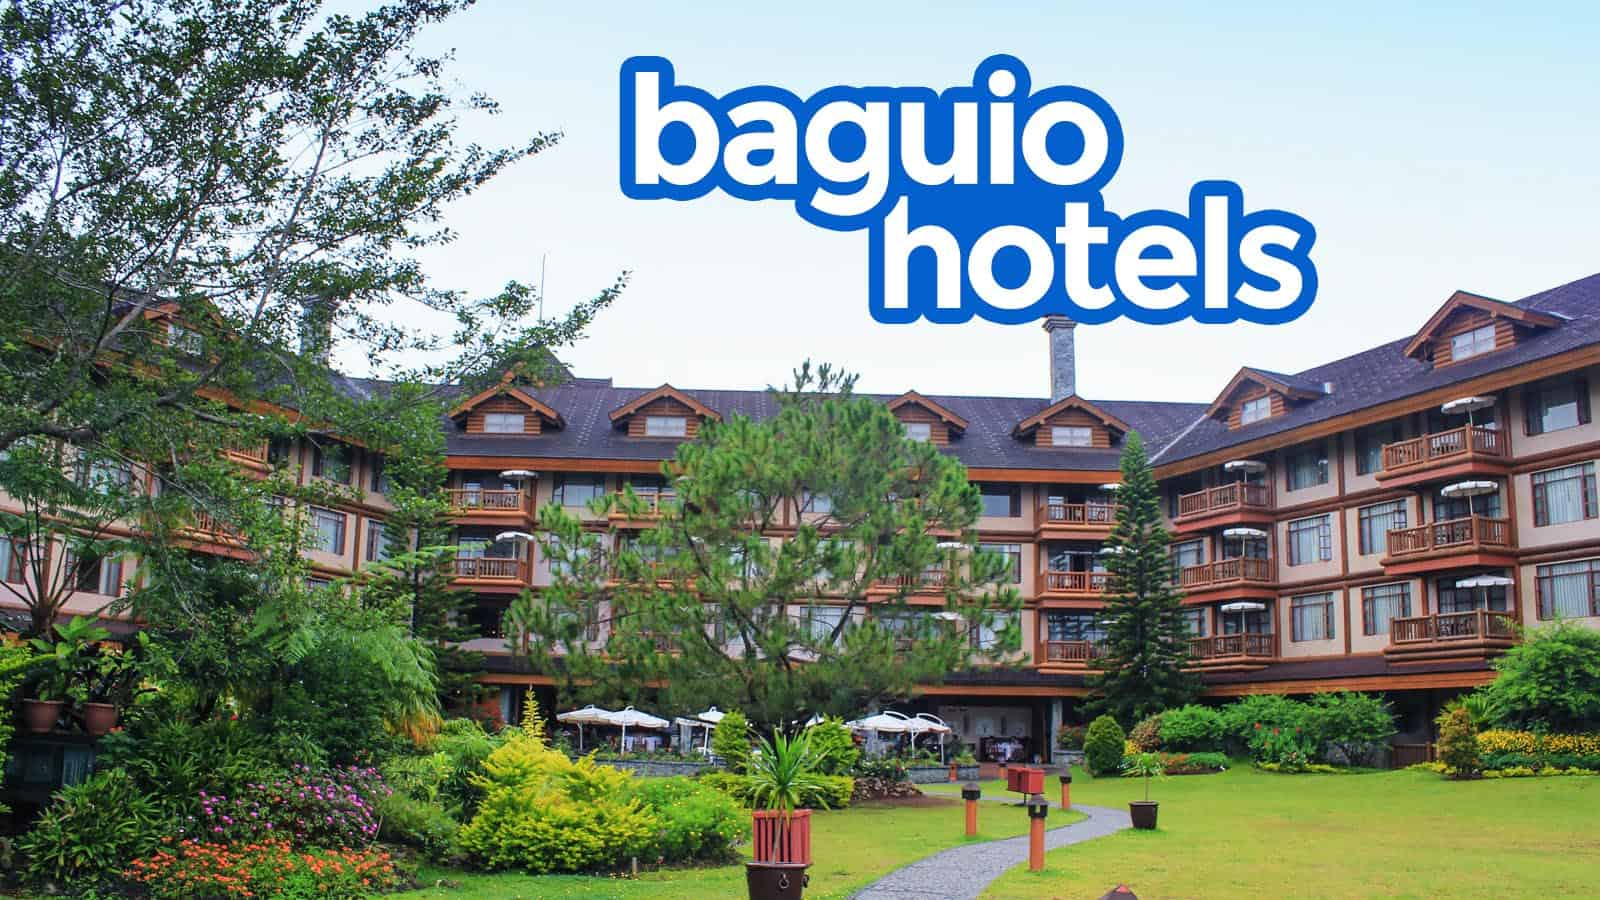 TOP 13 BAGUIO HOTELS According to Online Reviews